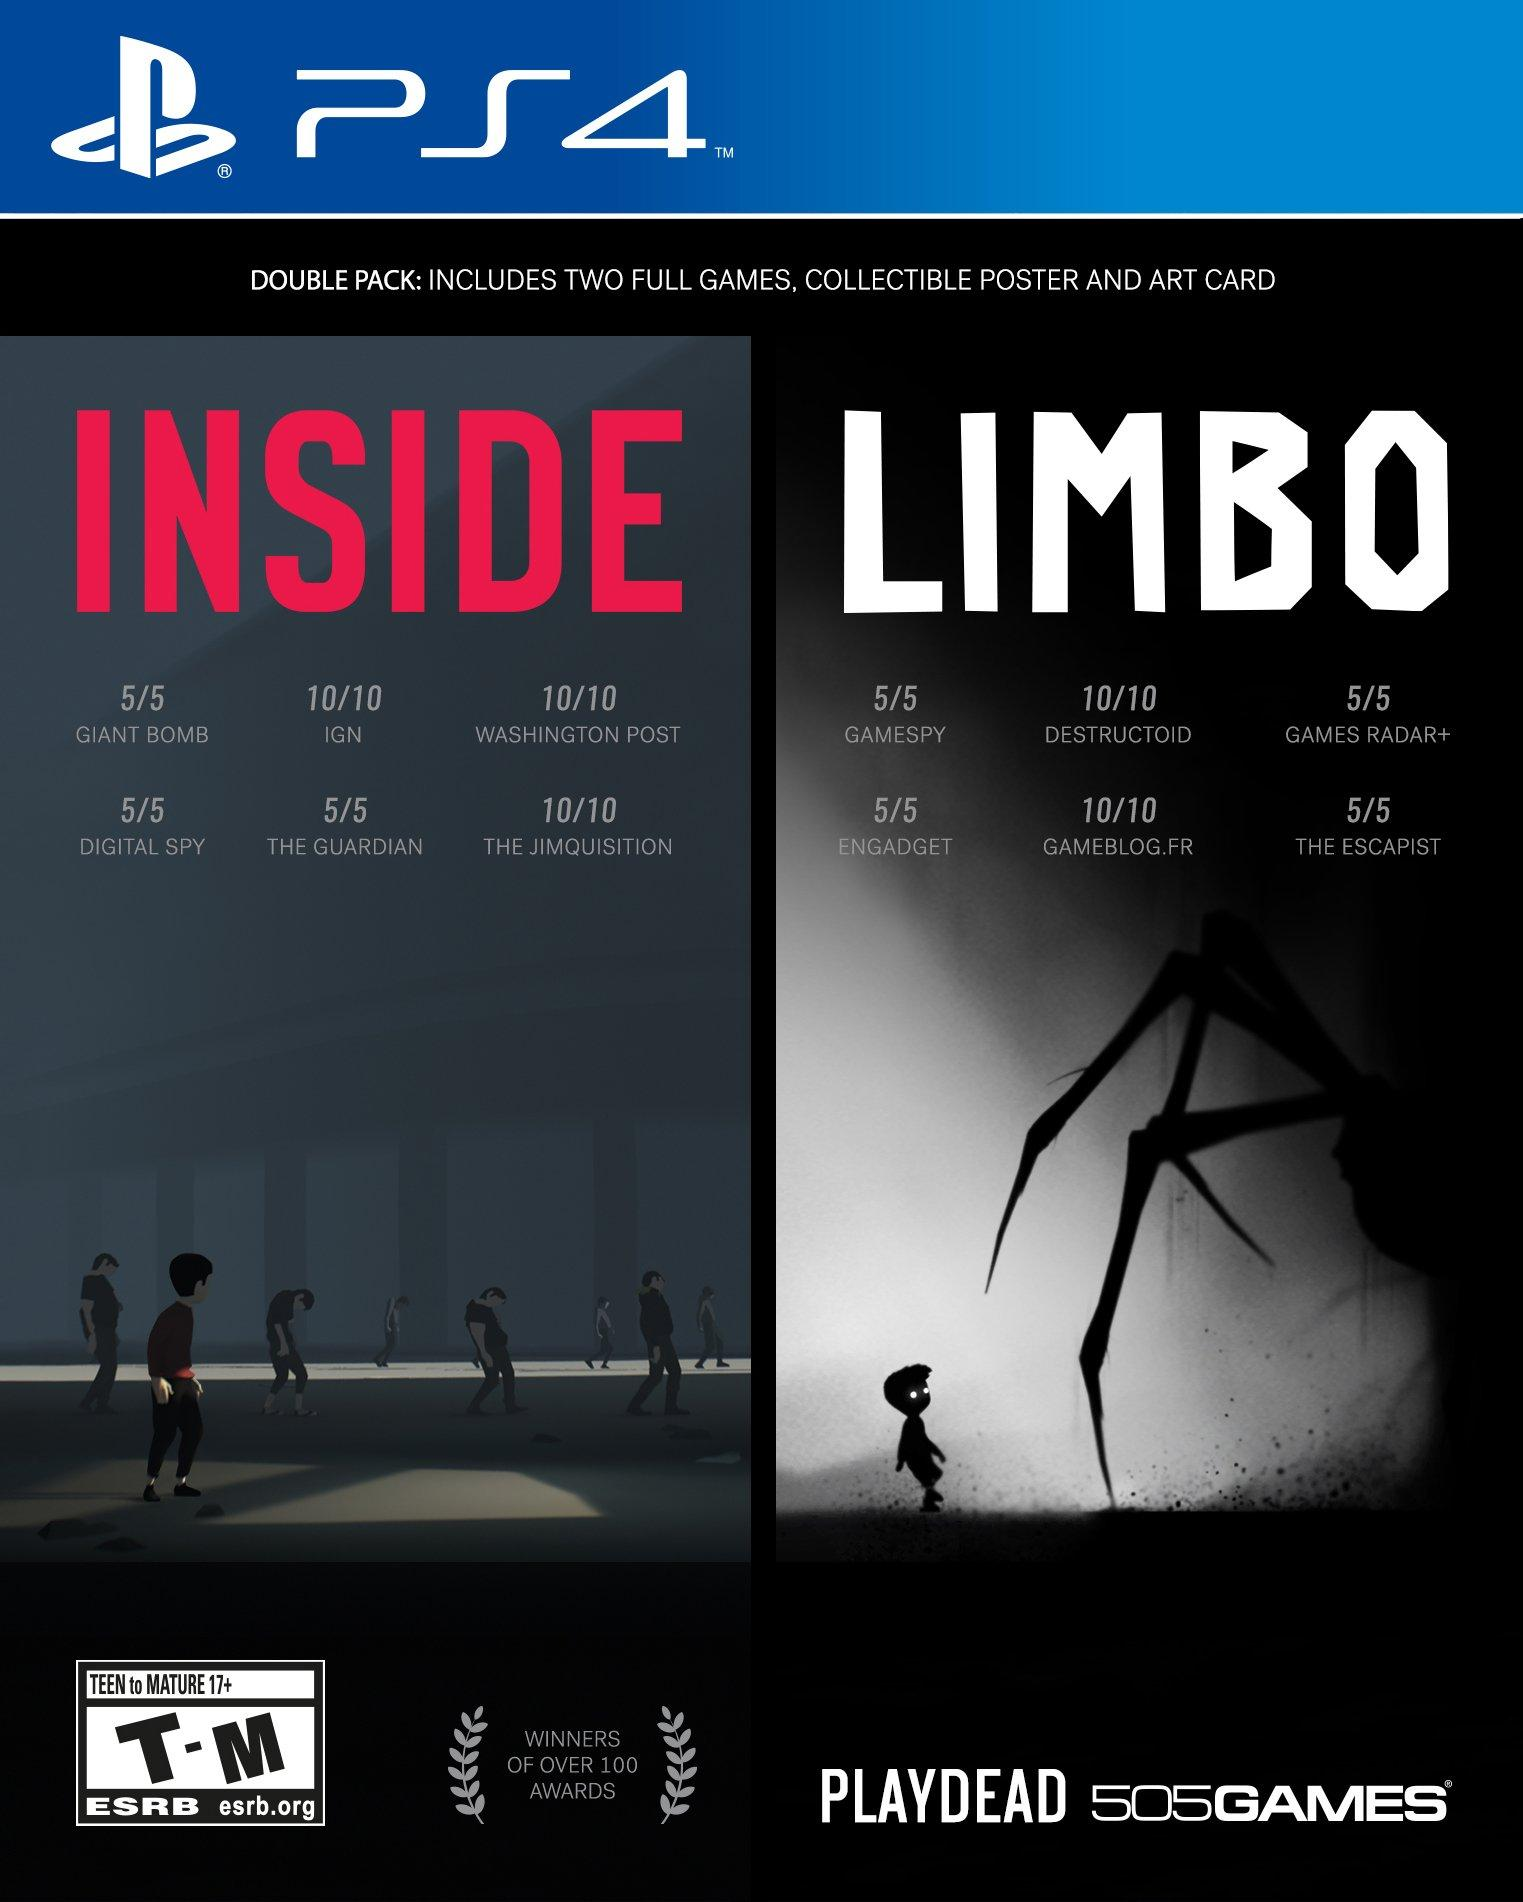 inside limbo double pack | playstation 4 | gamestop